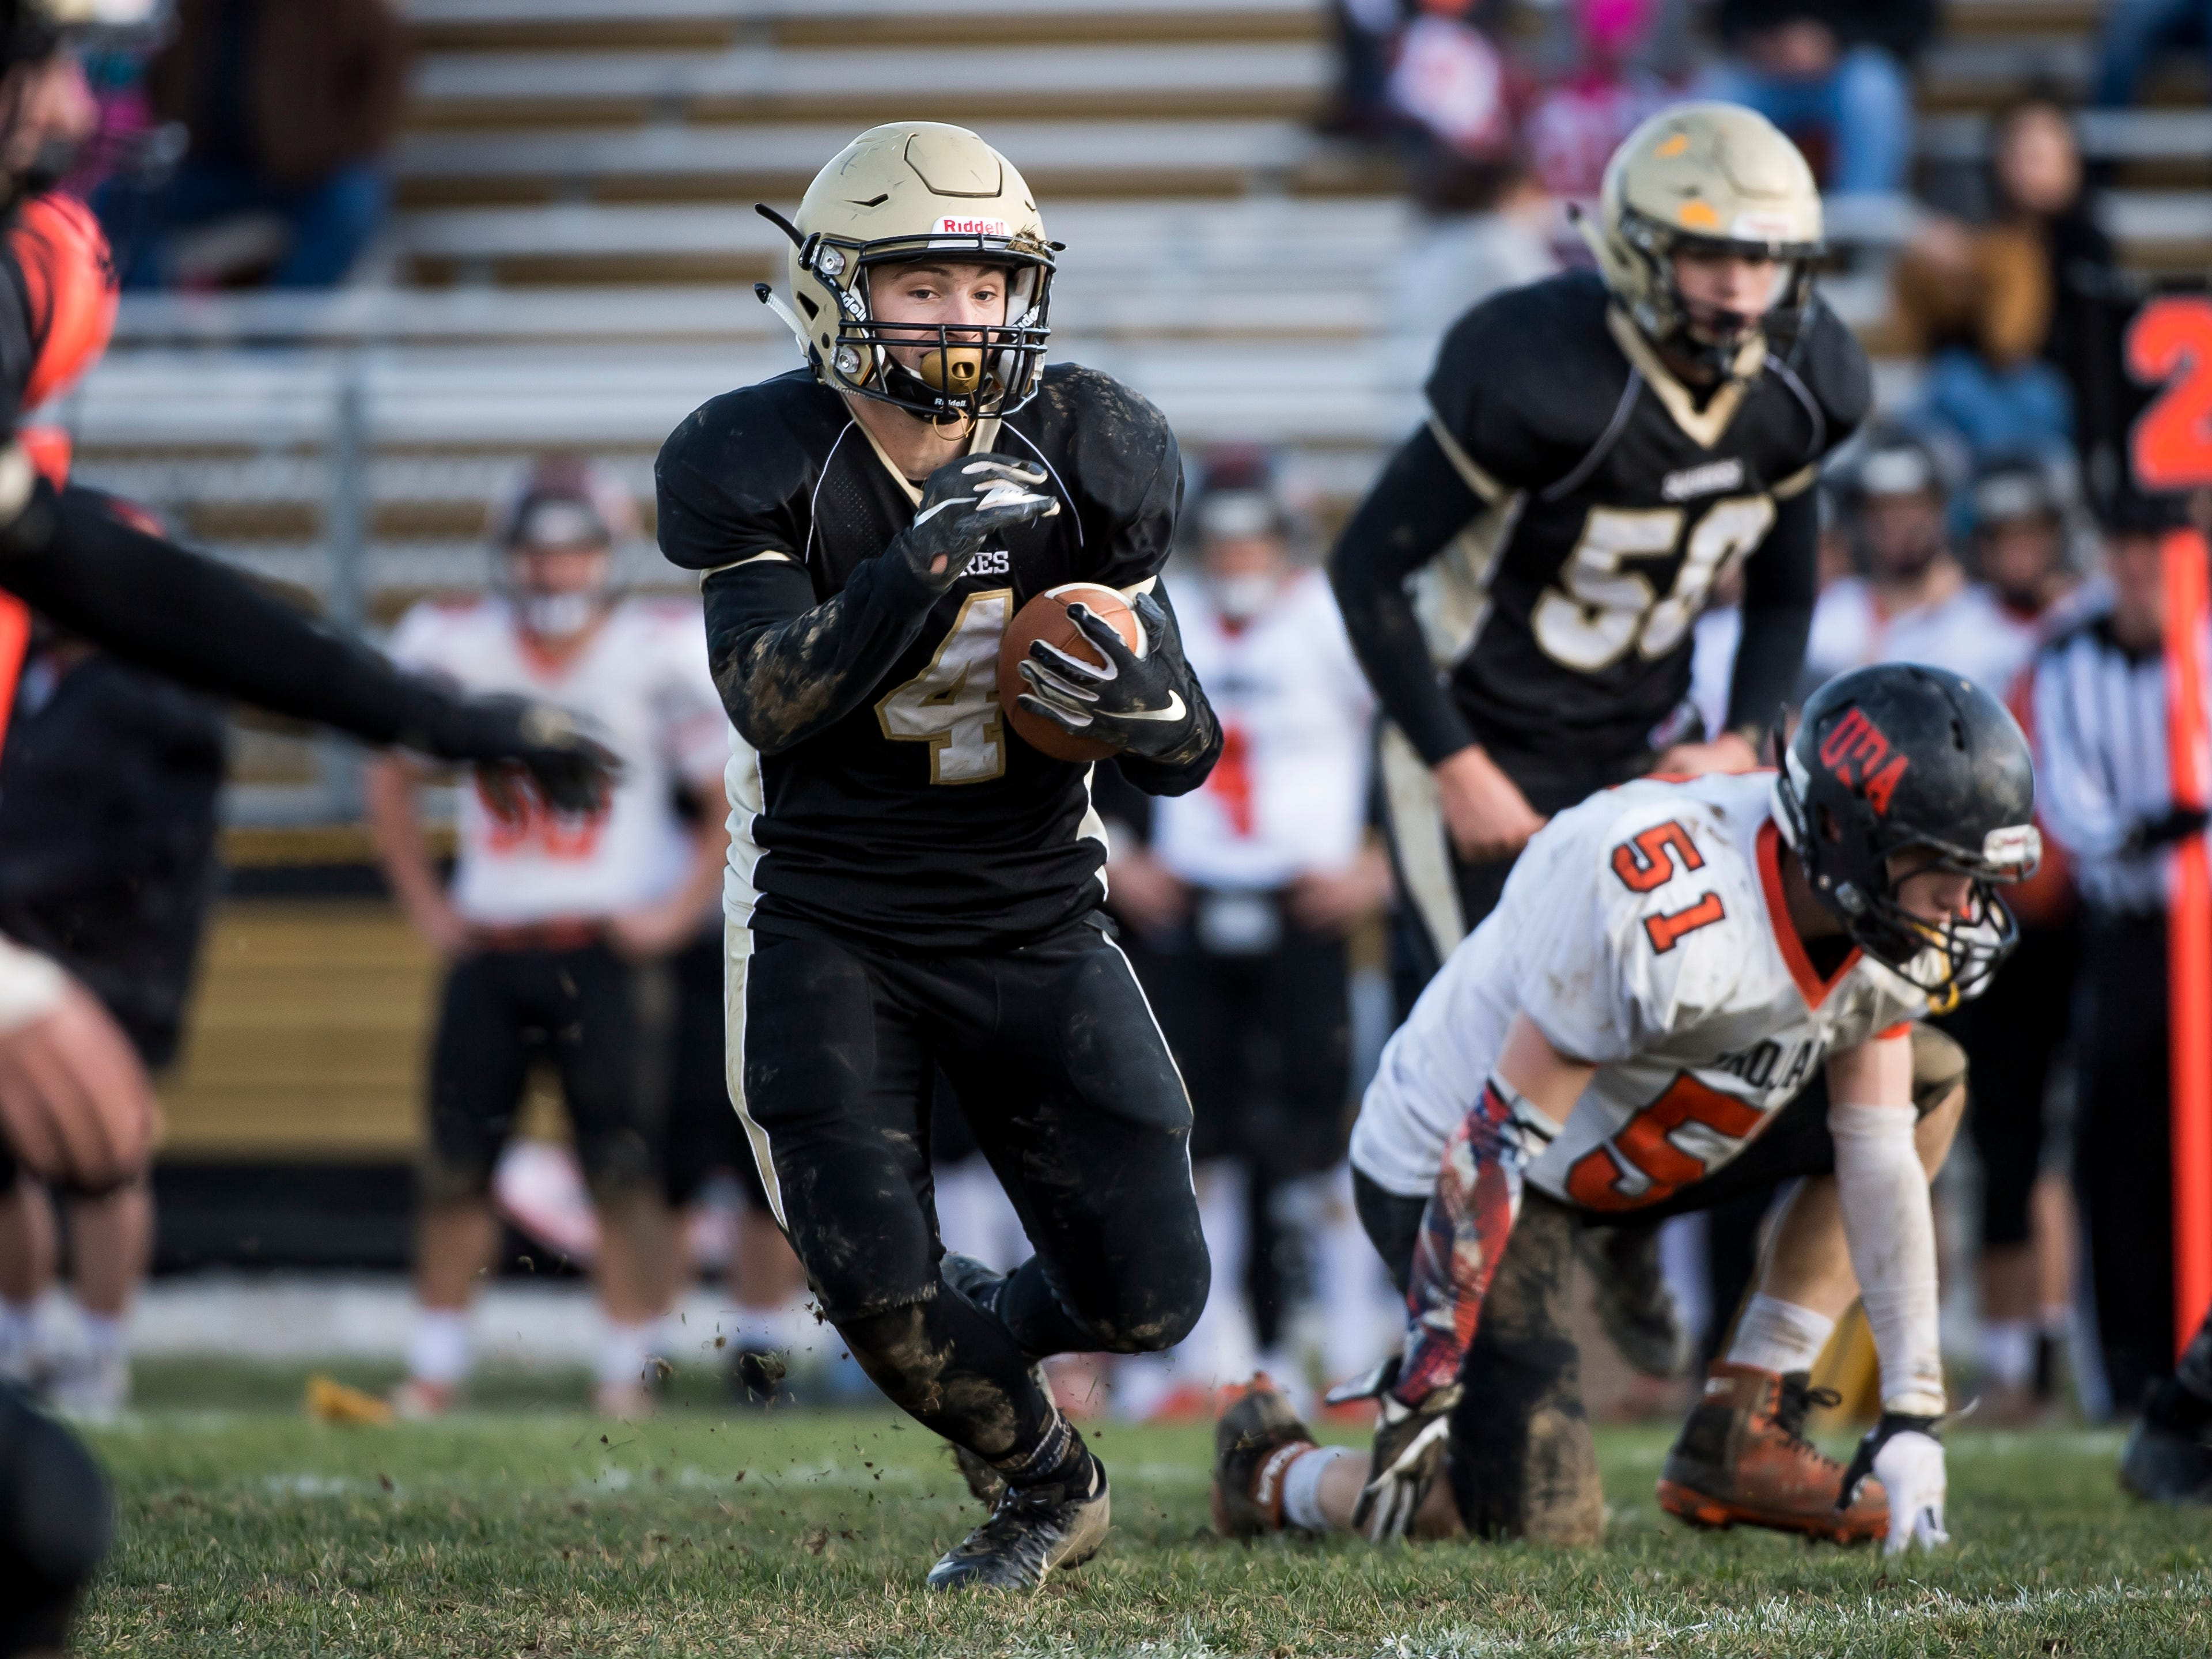 Delone Catholic's Colin Gebhart carries the ball during a District III Class 2A semifinal game against Upper Dauphin on Saturday, November 3, 2018. The Squires won 48-23.